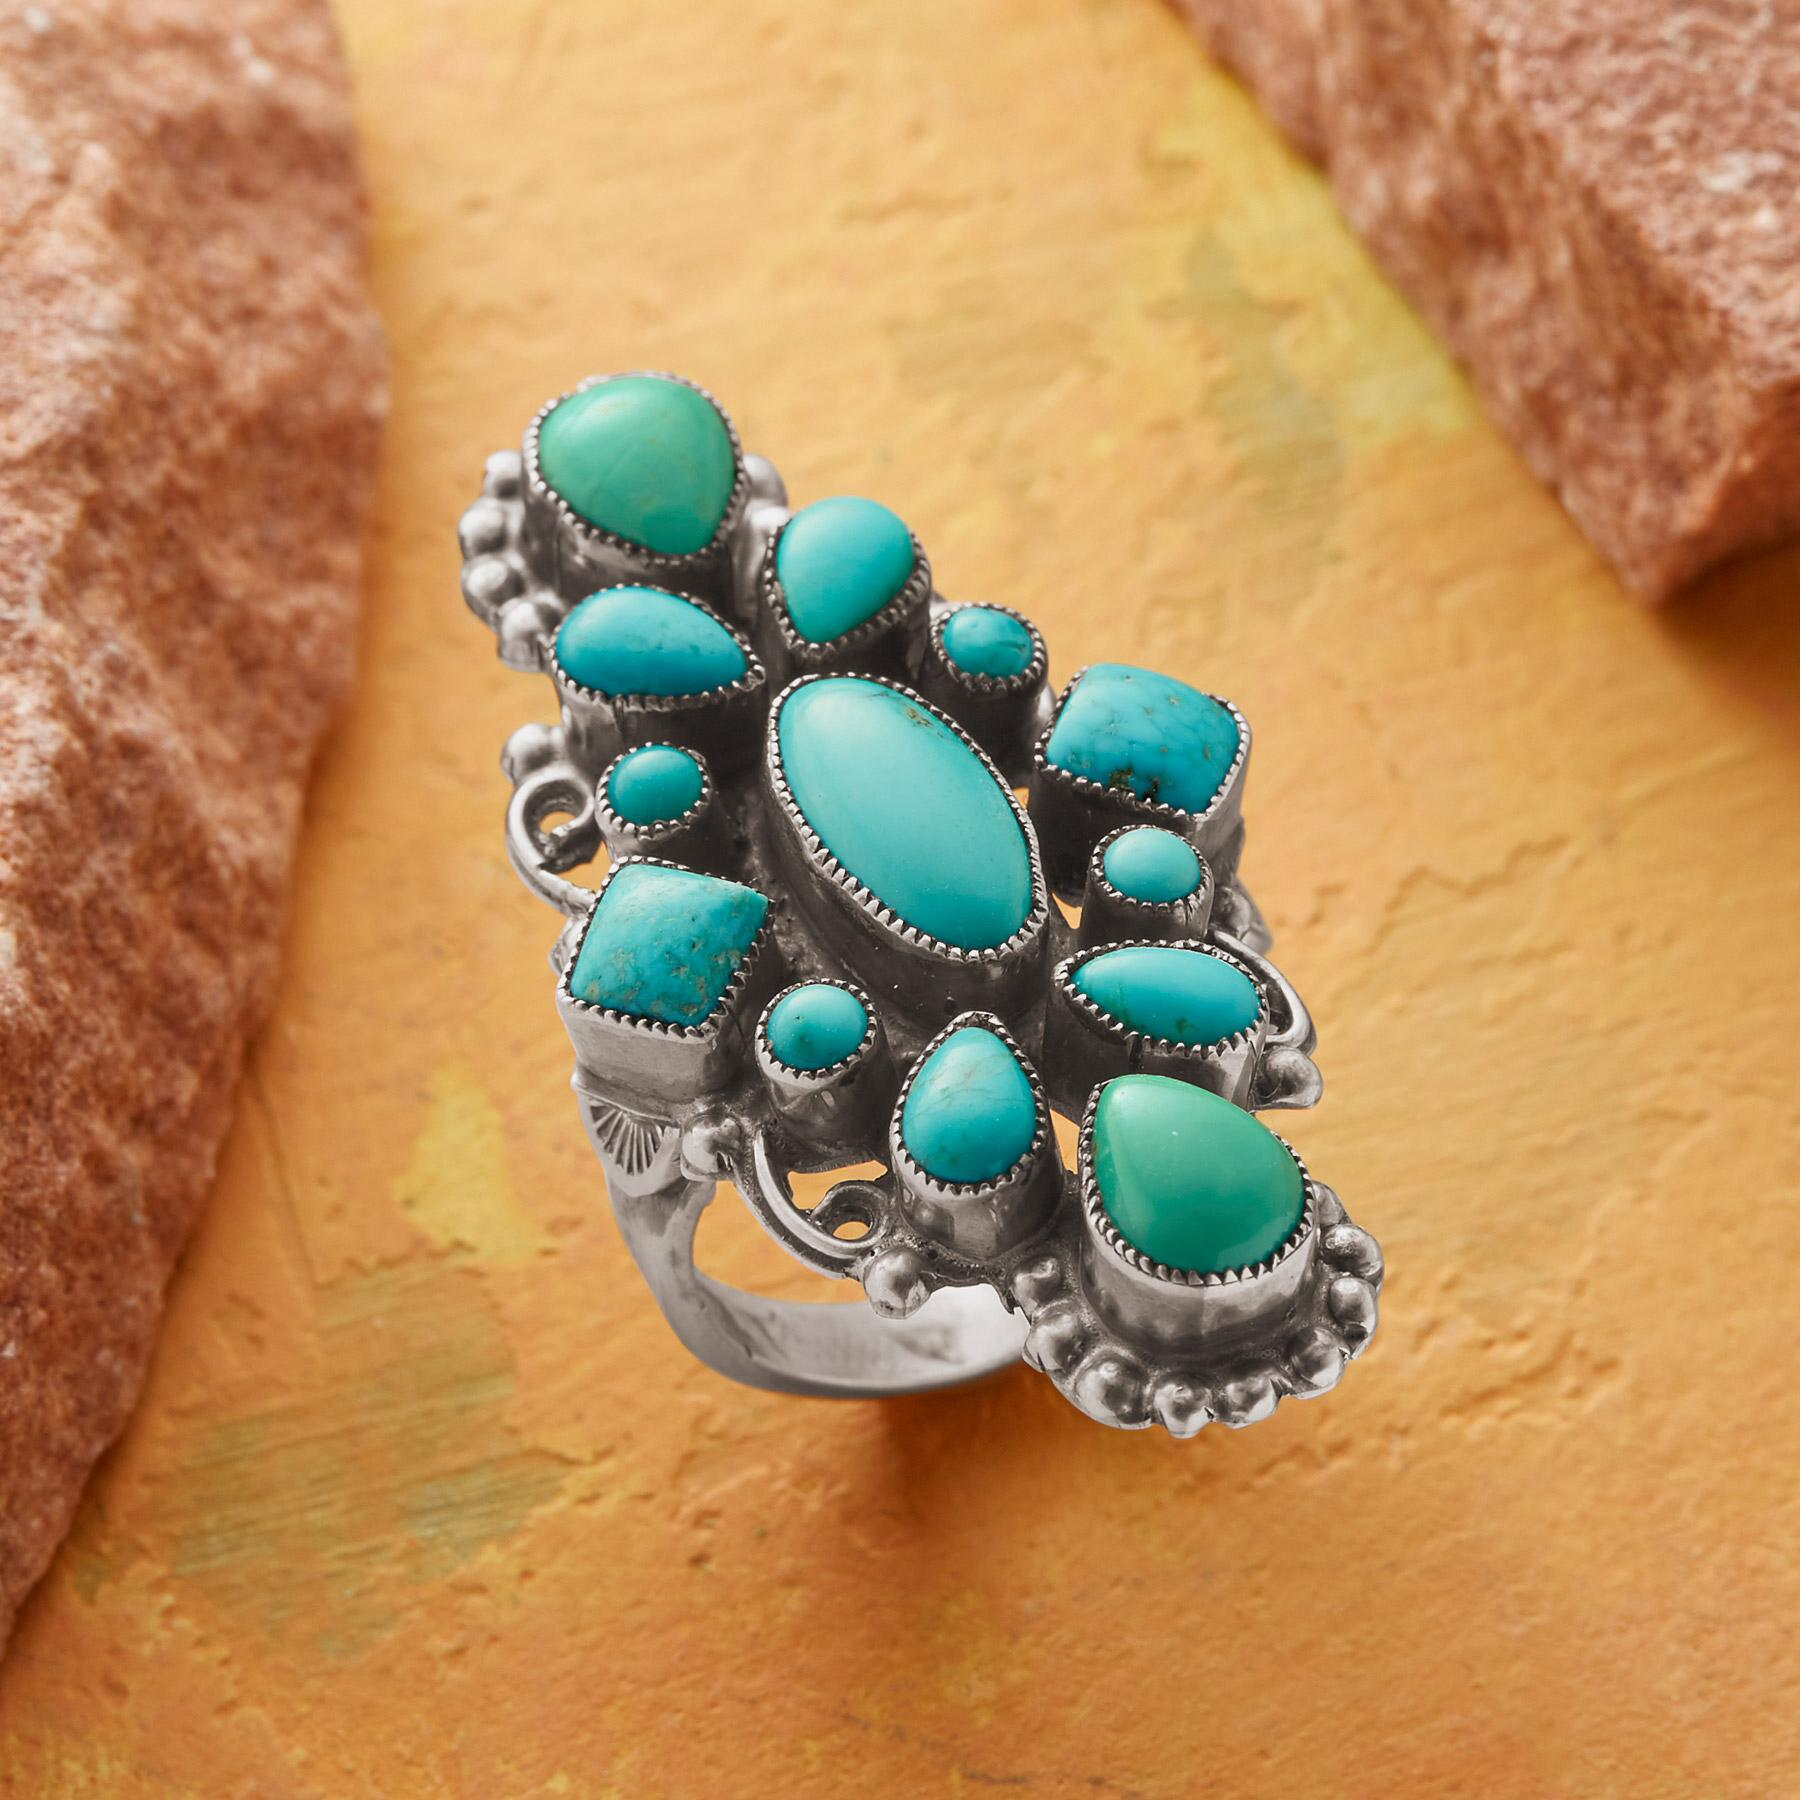 SOUTH BY SOUTHWEST RING: View 1